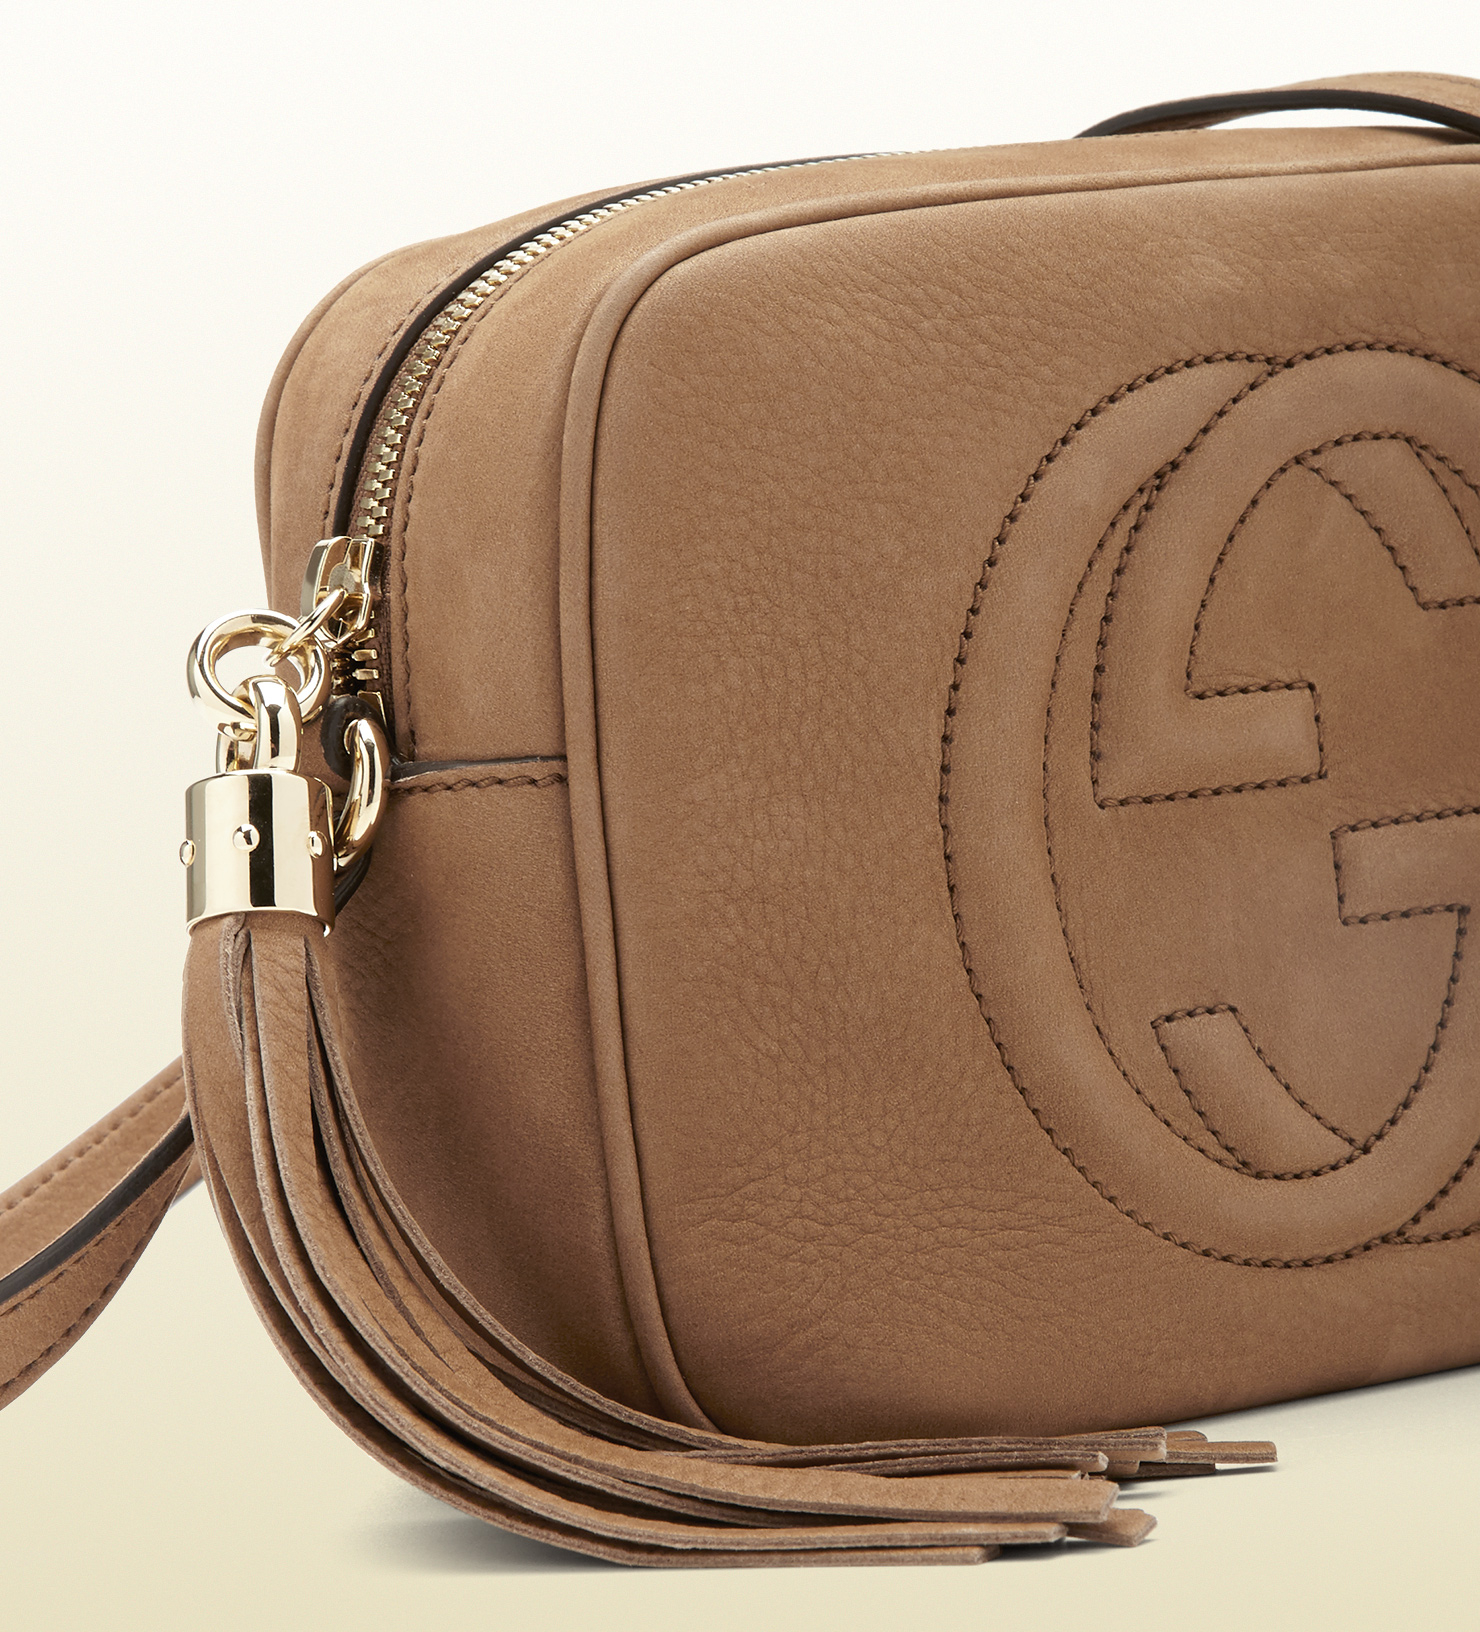 2a9d4f0d9e8 Lyst - Gucci Soho Nubuck Leather Disco Bag in Brown